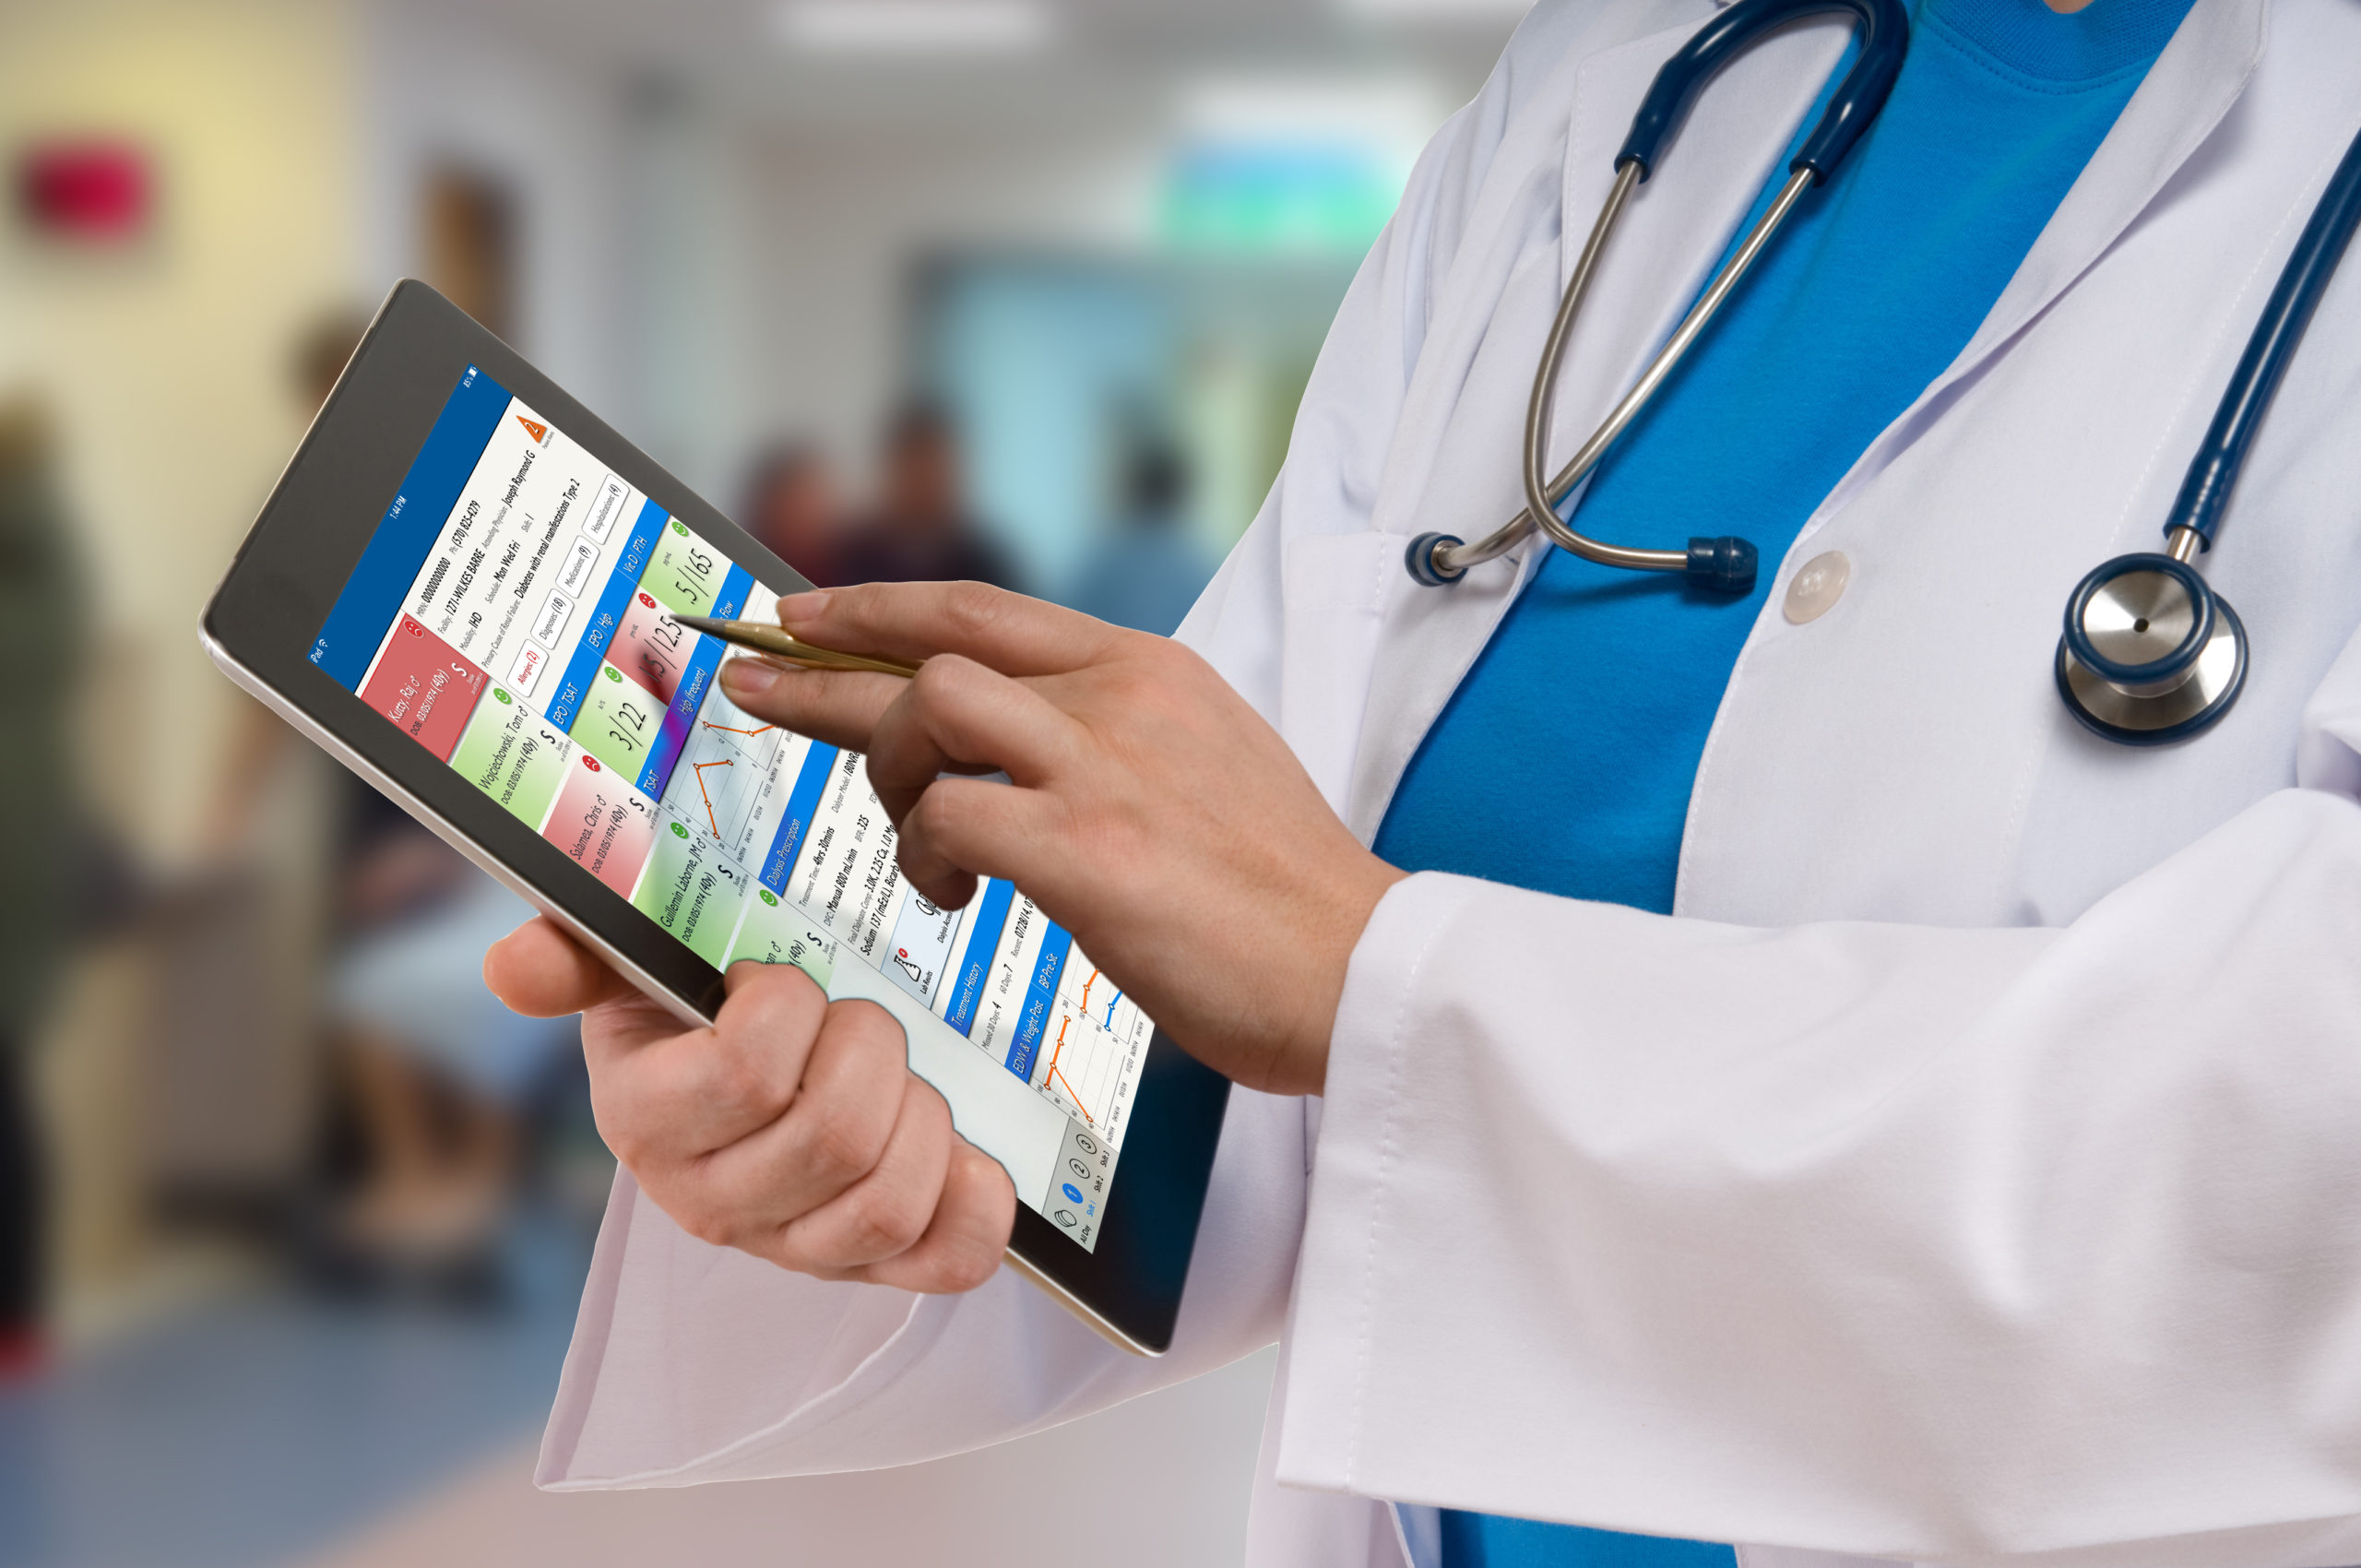 Mobile Healthcare Solutions Heal Physician Satisfaction & Improve Care